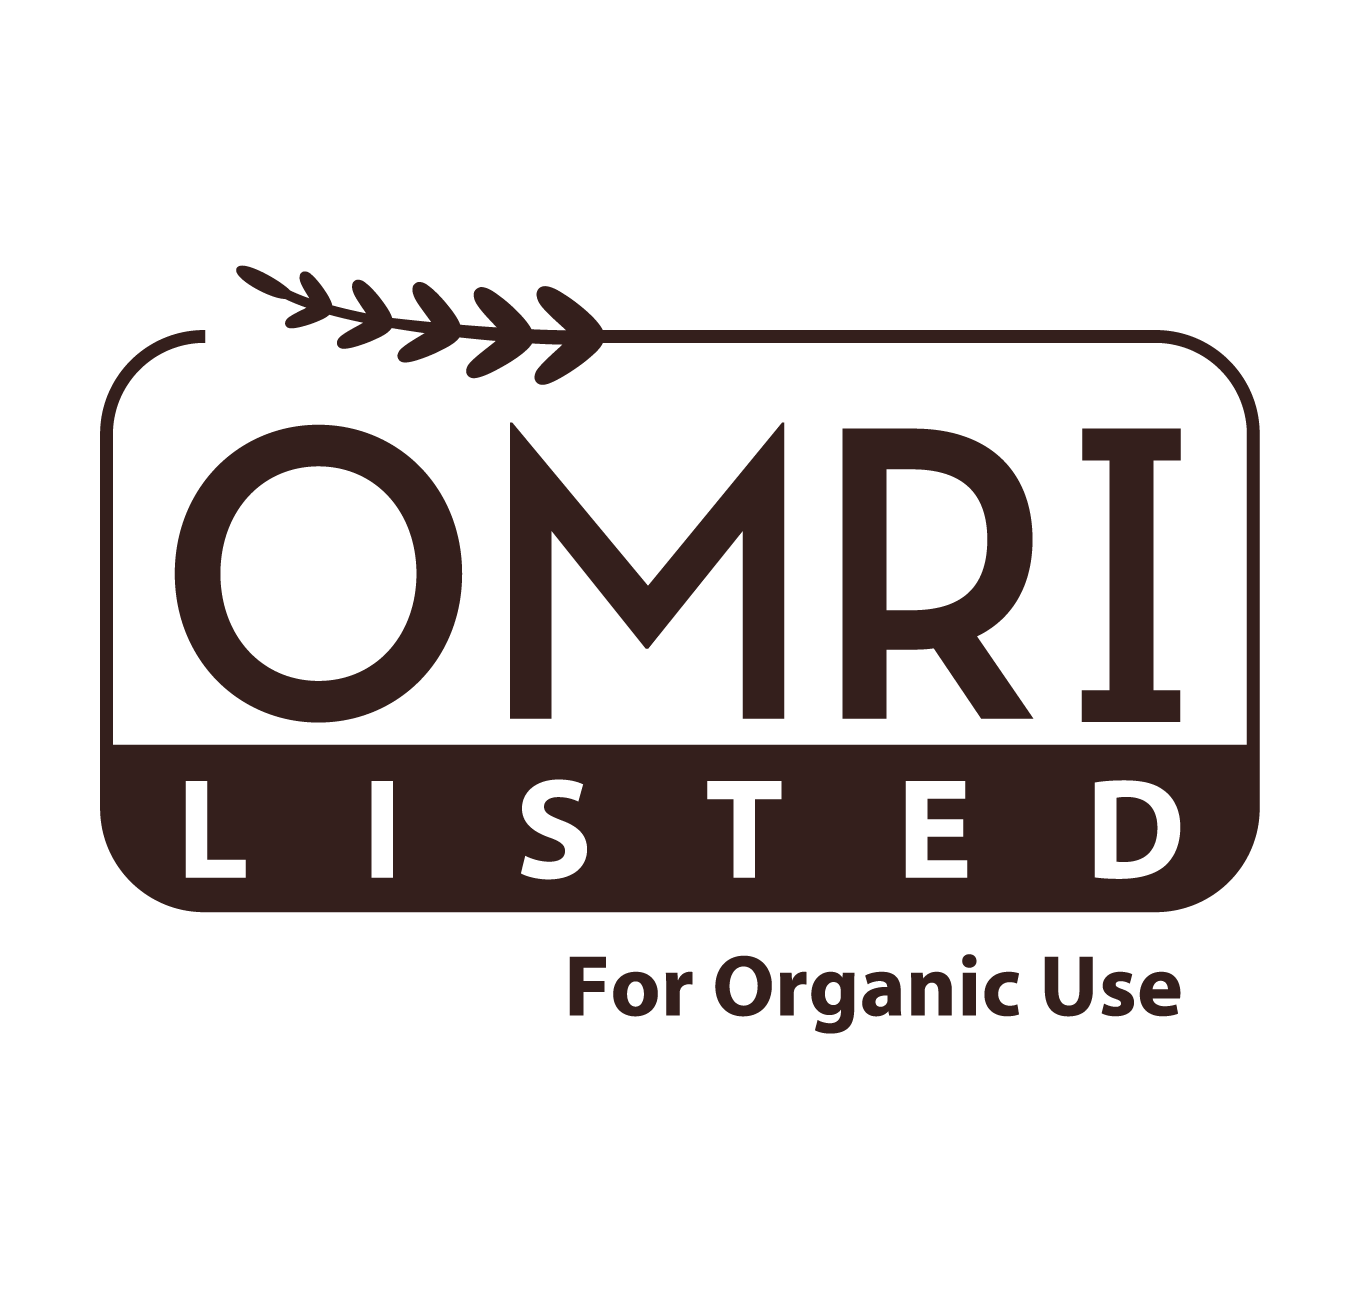 OMRI: Organic Materials Review Institute